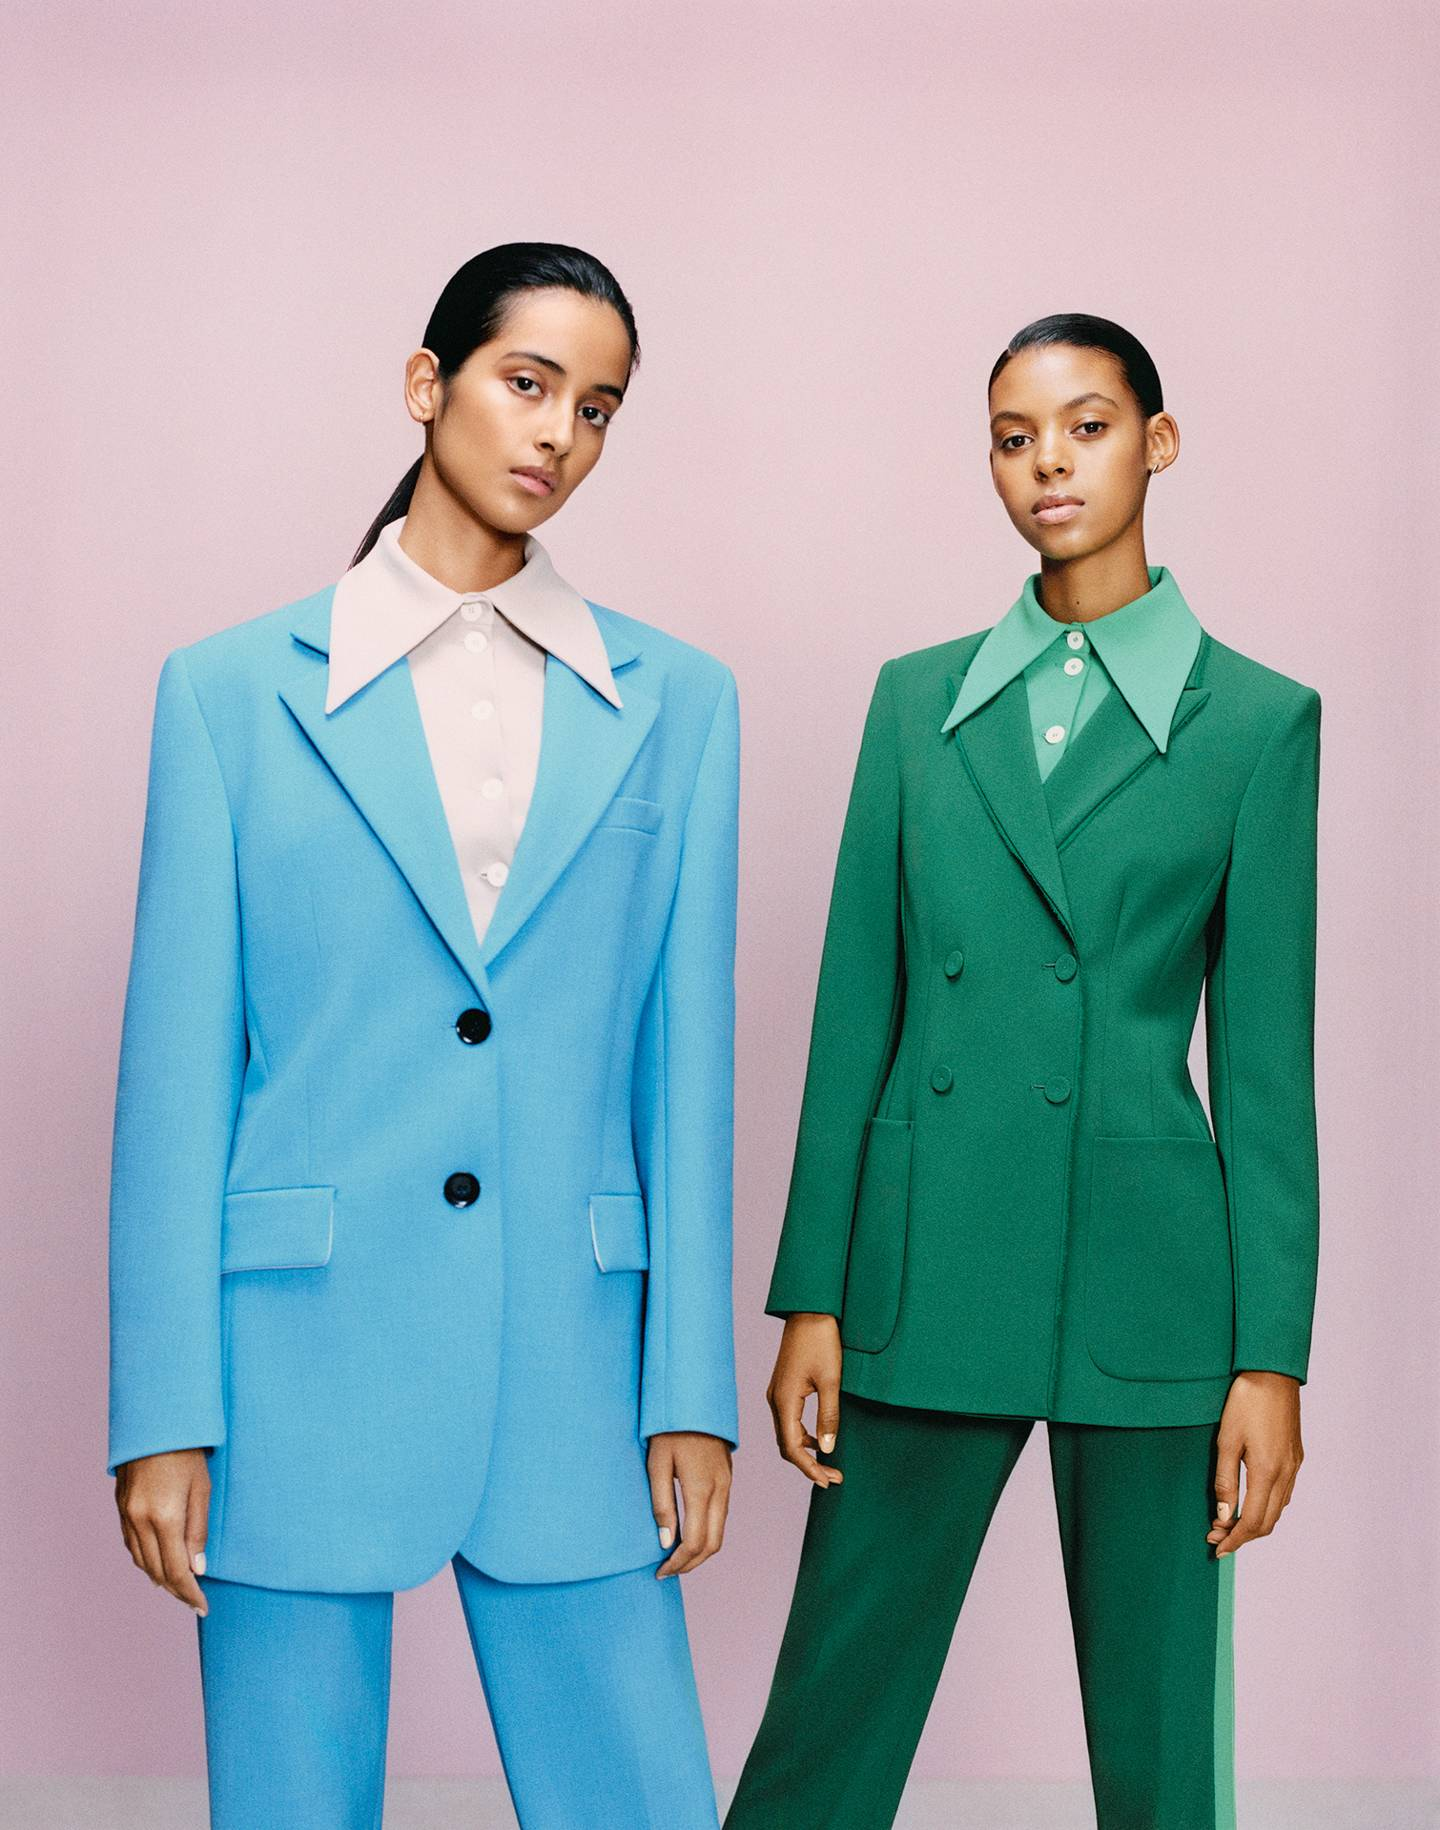 a578ad7ca5bc What To Wear To Work In 2019 | The Workwear Pieces To Buy & How To Wear  Them | British Vogue